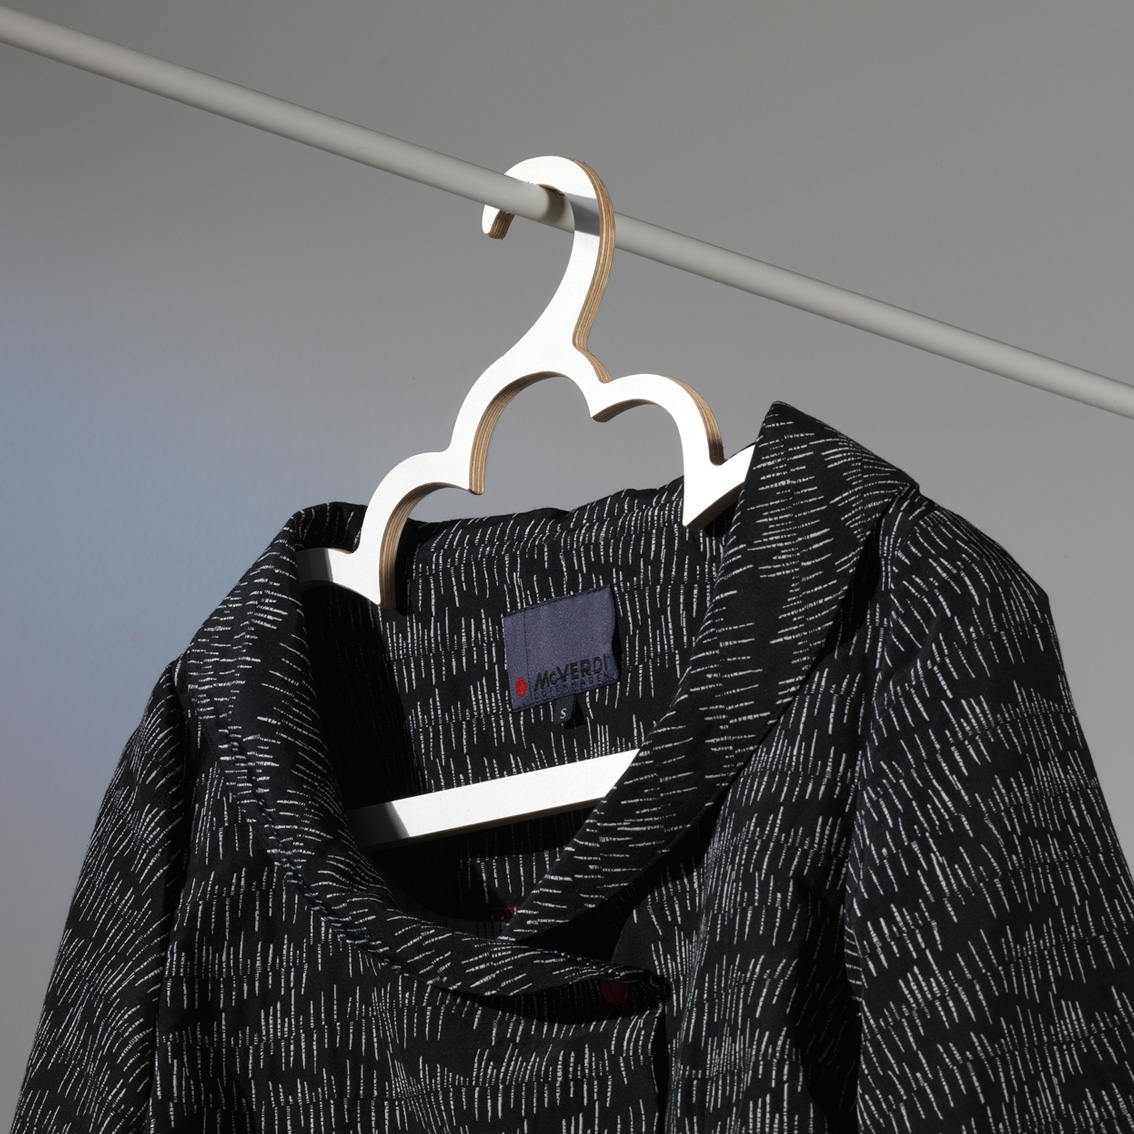 The Cloud cloth hanger